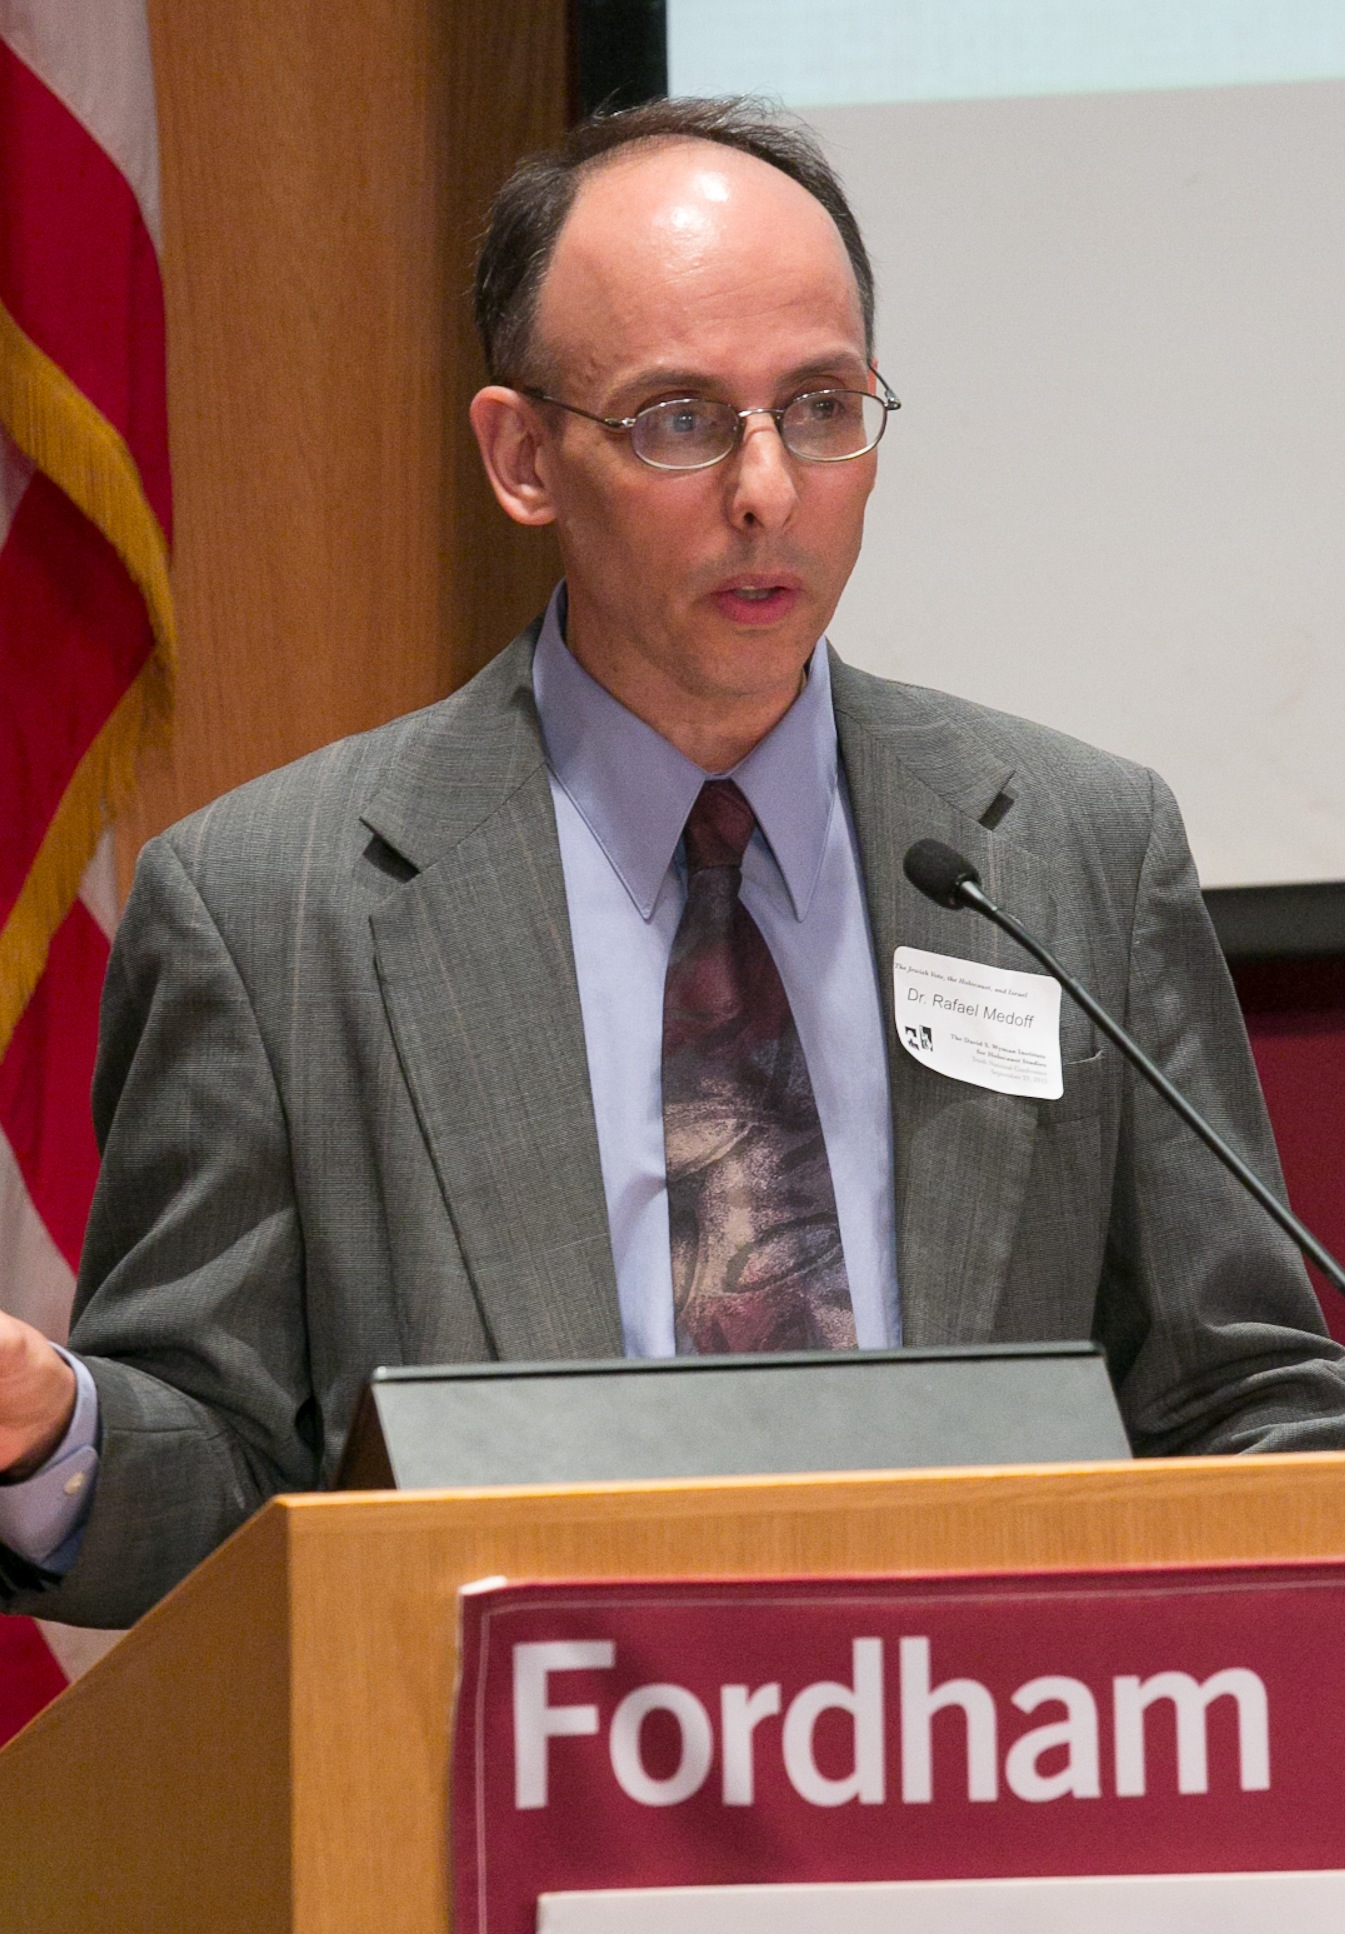 Rafael Medoff speaking at a conference at [[Fordham University Law School]] in New York City in October 2012